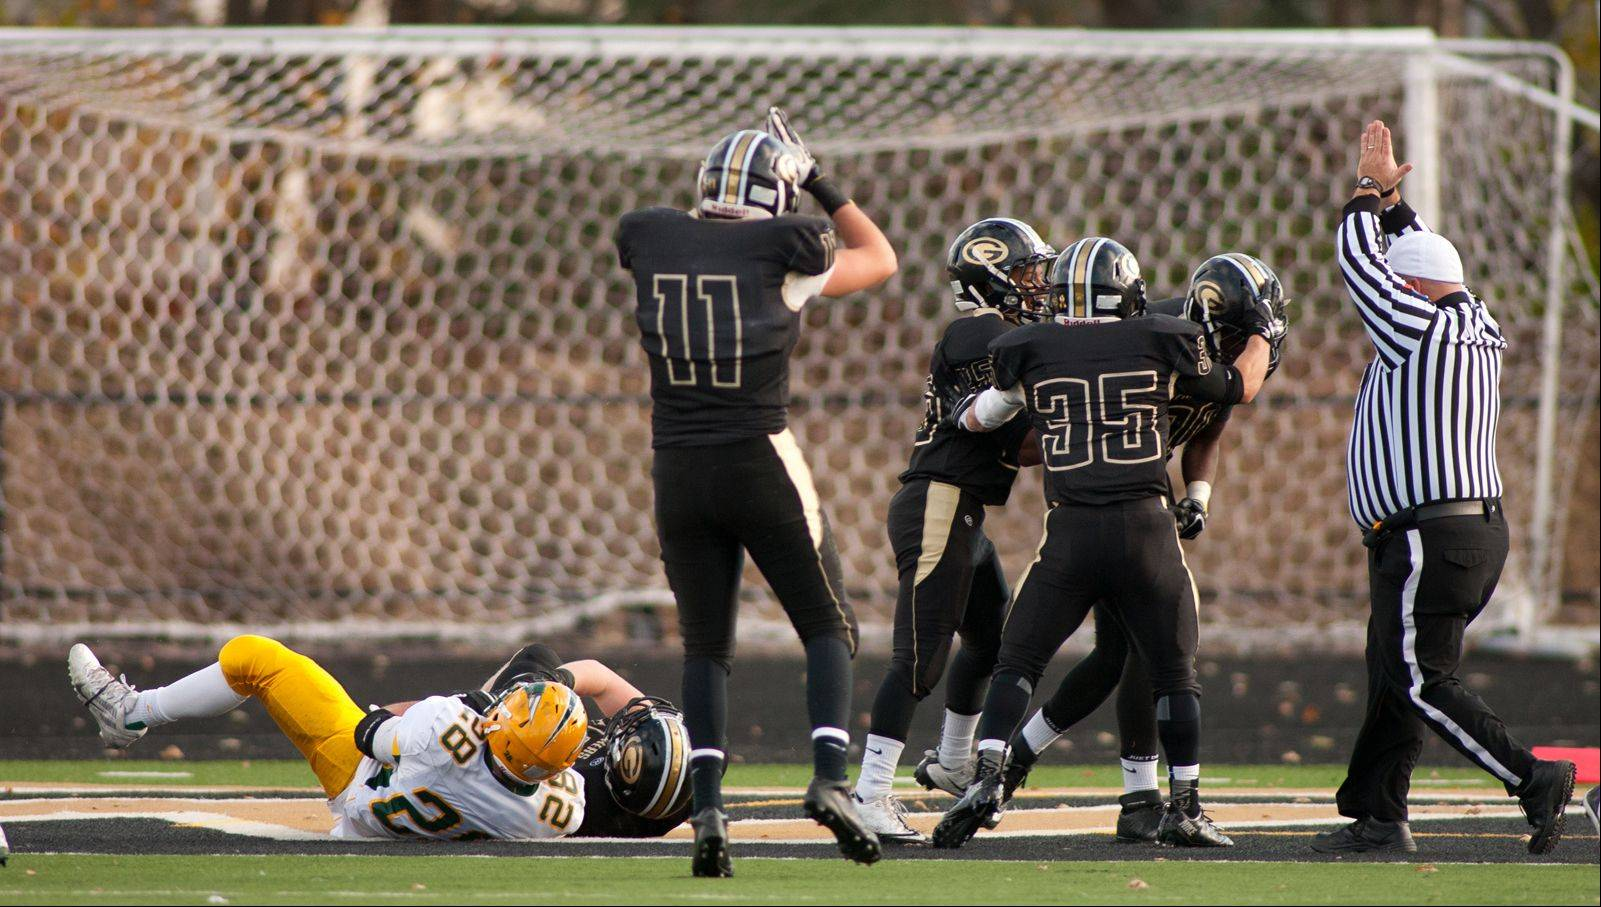 Glenbard North players celebrate scoring a safety against Stevenson punter Jack Joseph (28), who attempts to secure an errant snap. The play gave the Panthers a 16-14 lead.